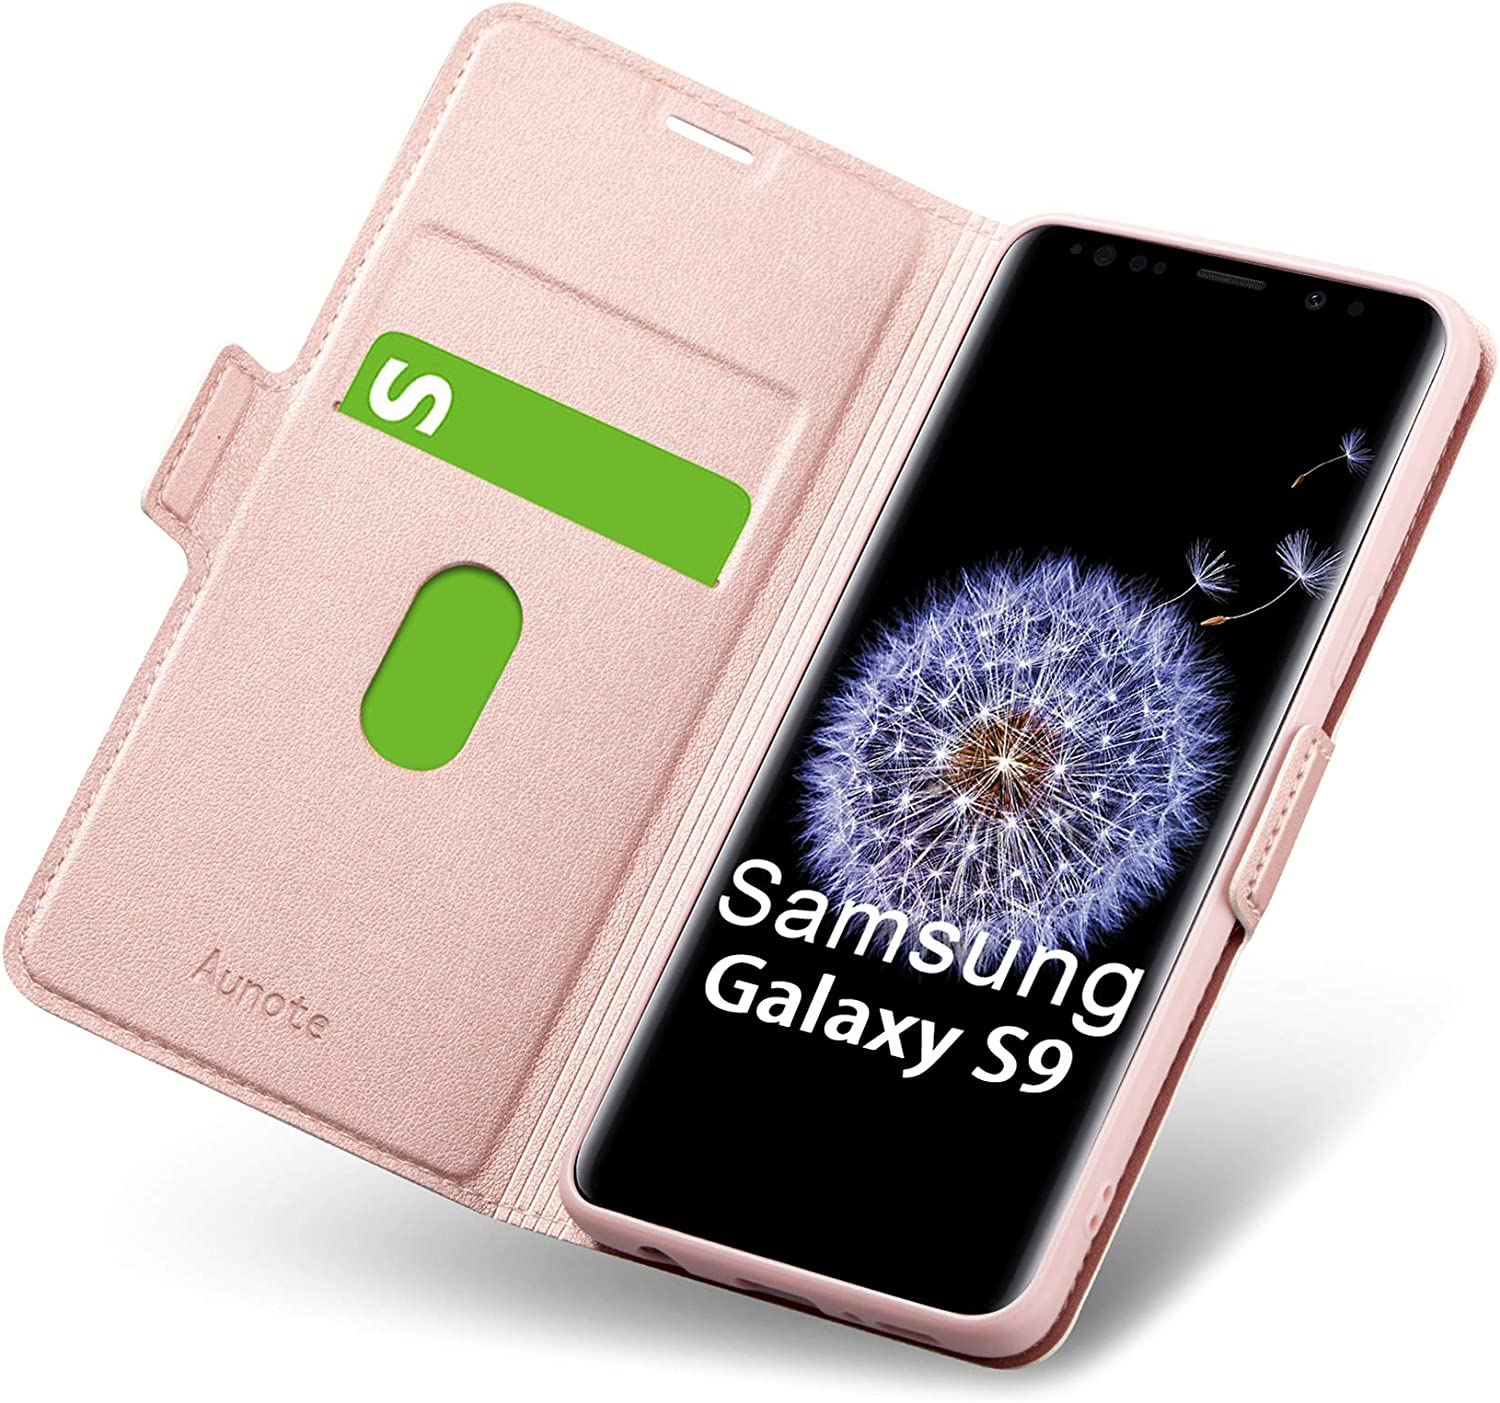 Samsung S9 Case Wallet Style, Galaxy S9 Wallet Case with Card Slot, Ultra Slim Flip Folio PU Leather Samsung Galaxy S9 Case, Full Protection S9 Phone Cover for Galaxie 5.8